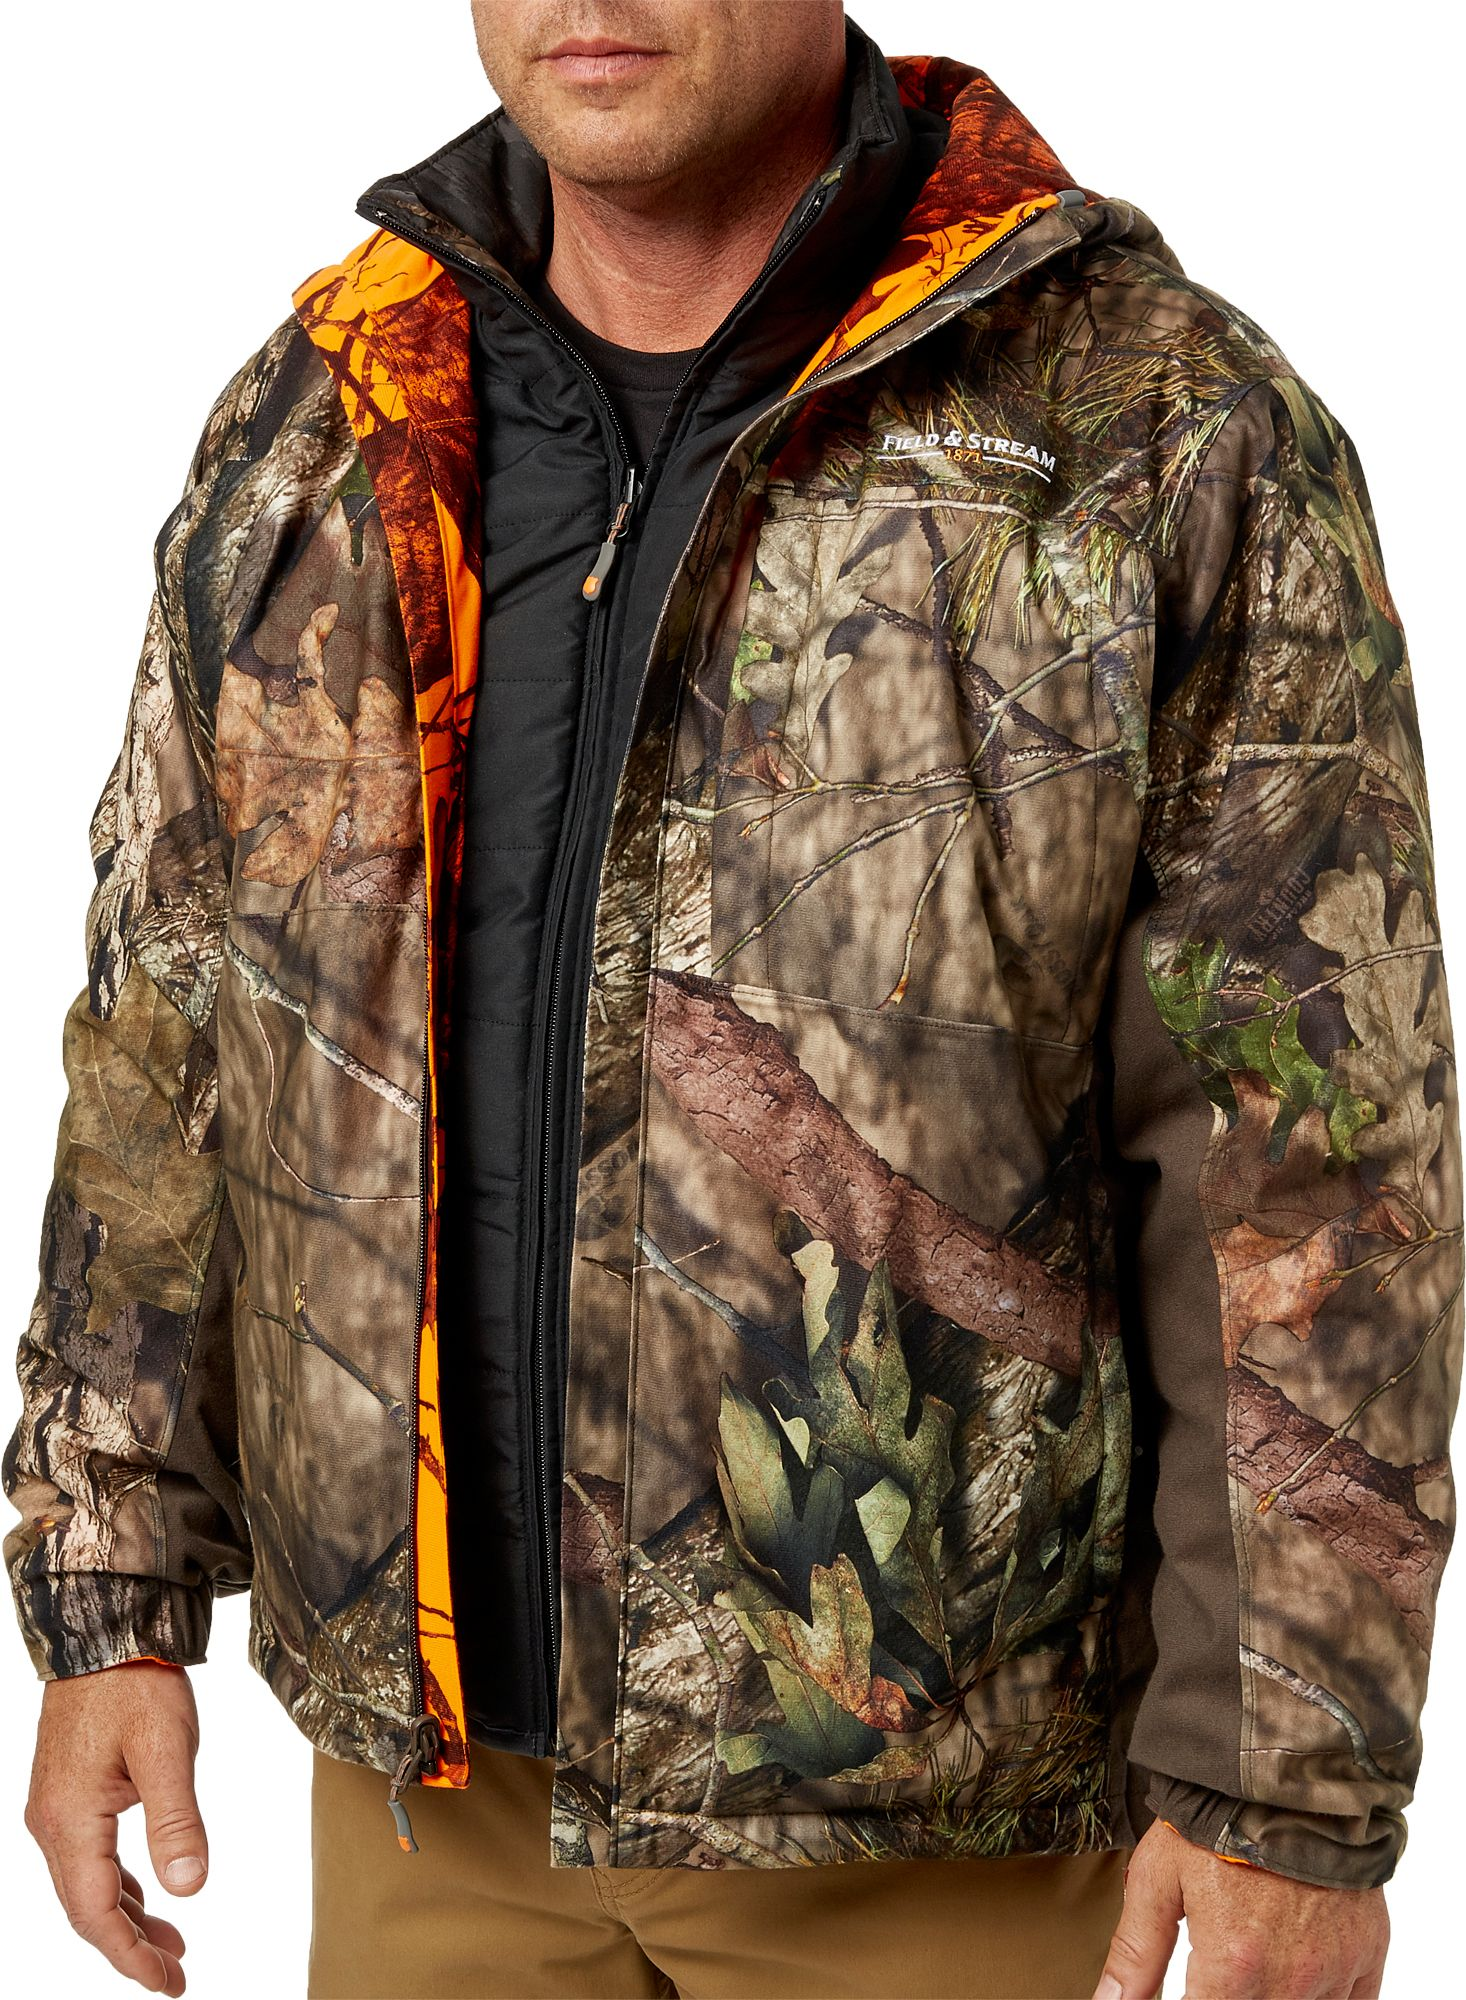 Field & Stream Men's Command Hunt 5 in 1 System Hunting Jacket, Size: Medium, Mossy Oak Country